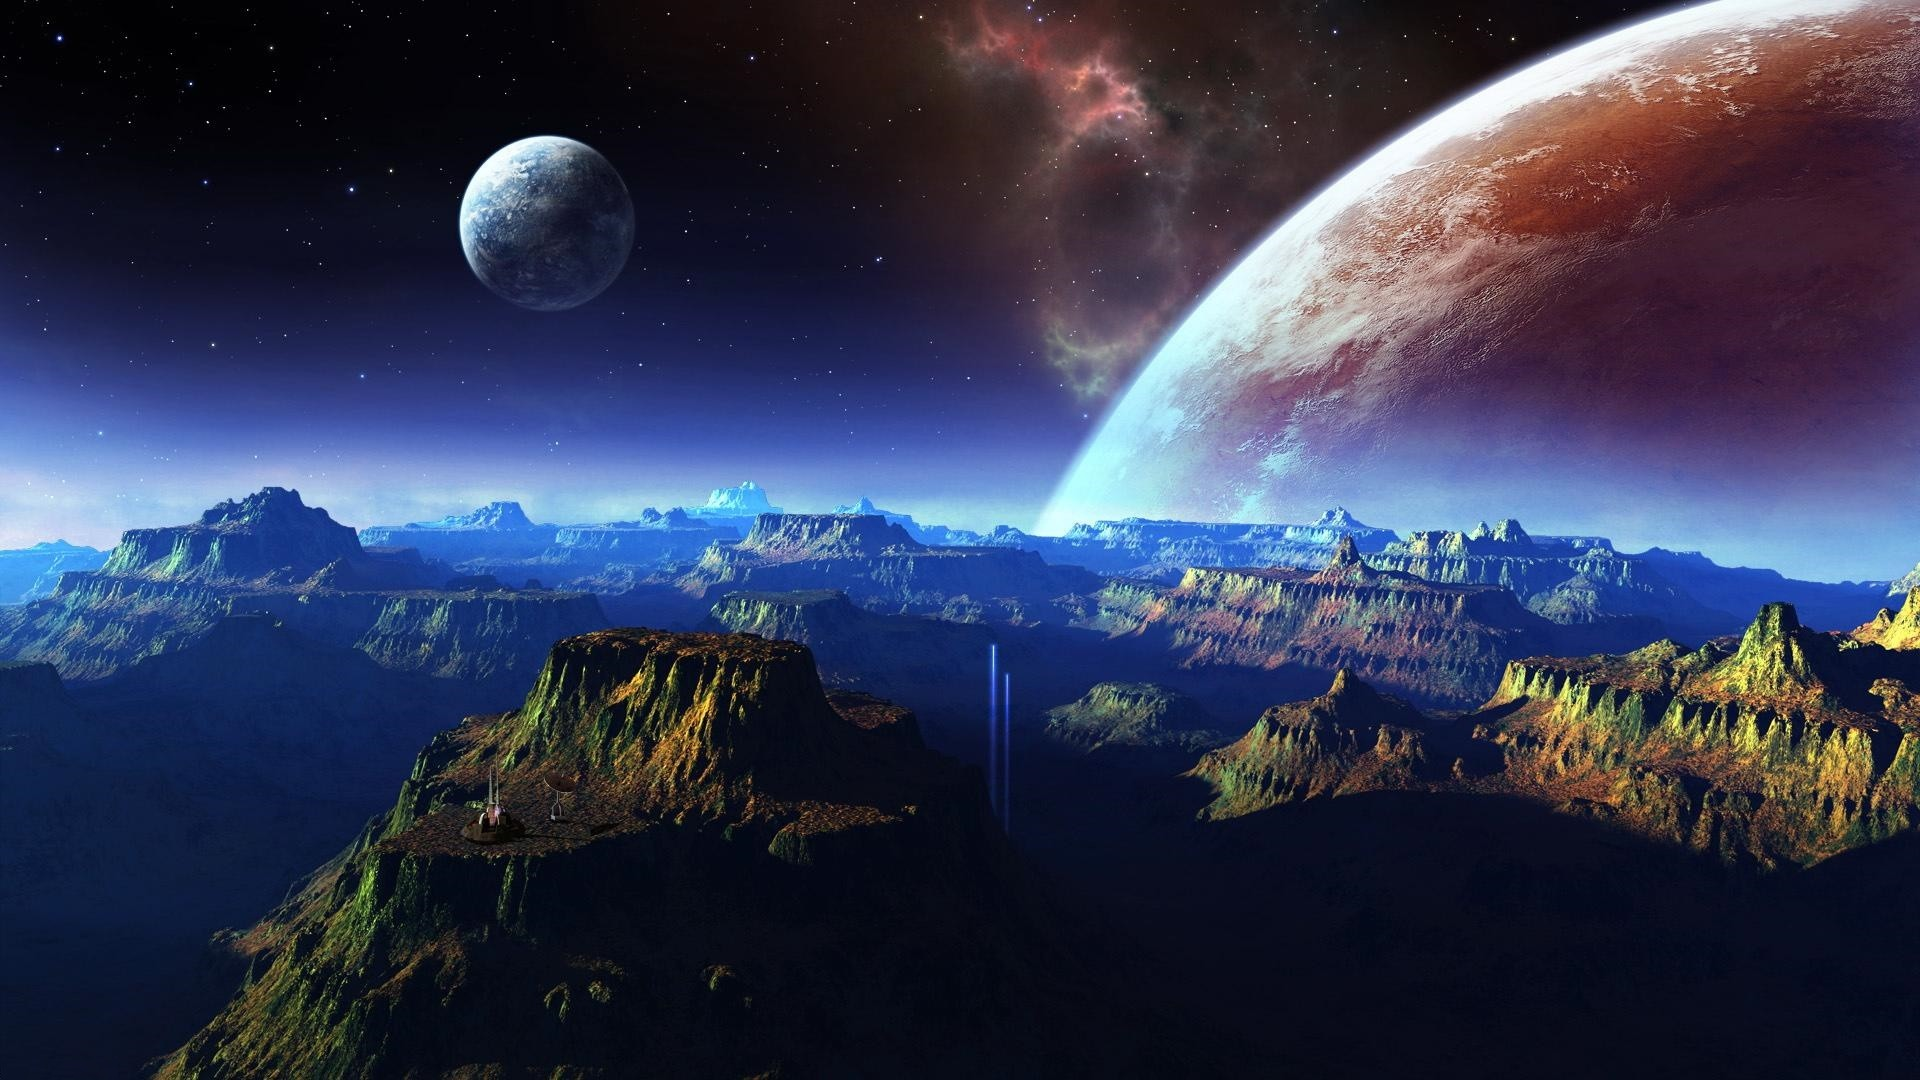 Space Wallpaper HD Widescreen (62+ Images